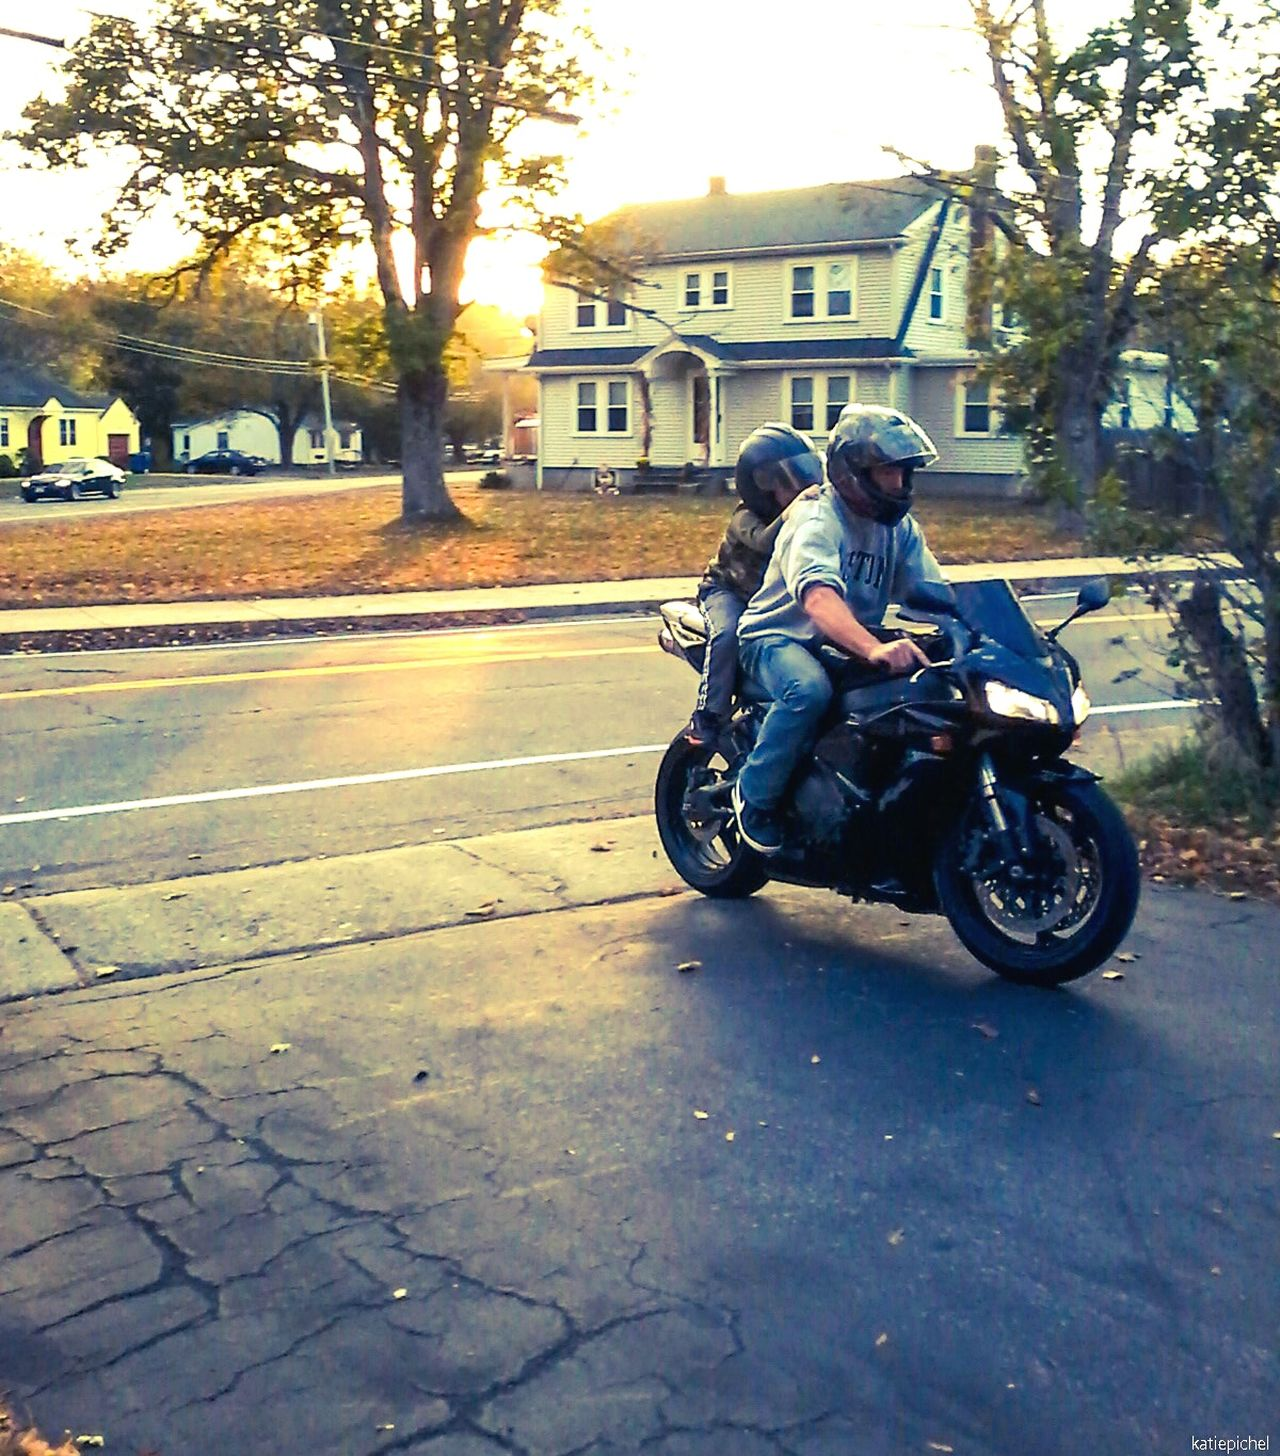 Transportation Full Length Motorcycle One Person Mode Of Transport Outdoors Day Land Vehicle Real People Mature Adult Building Exterior Person Built Structure City Vertical Fresh On Eyeem  Clear Sky Fatherhood Moments Father Fatherandson Fatherand Bonding Bond Family